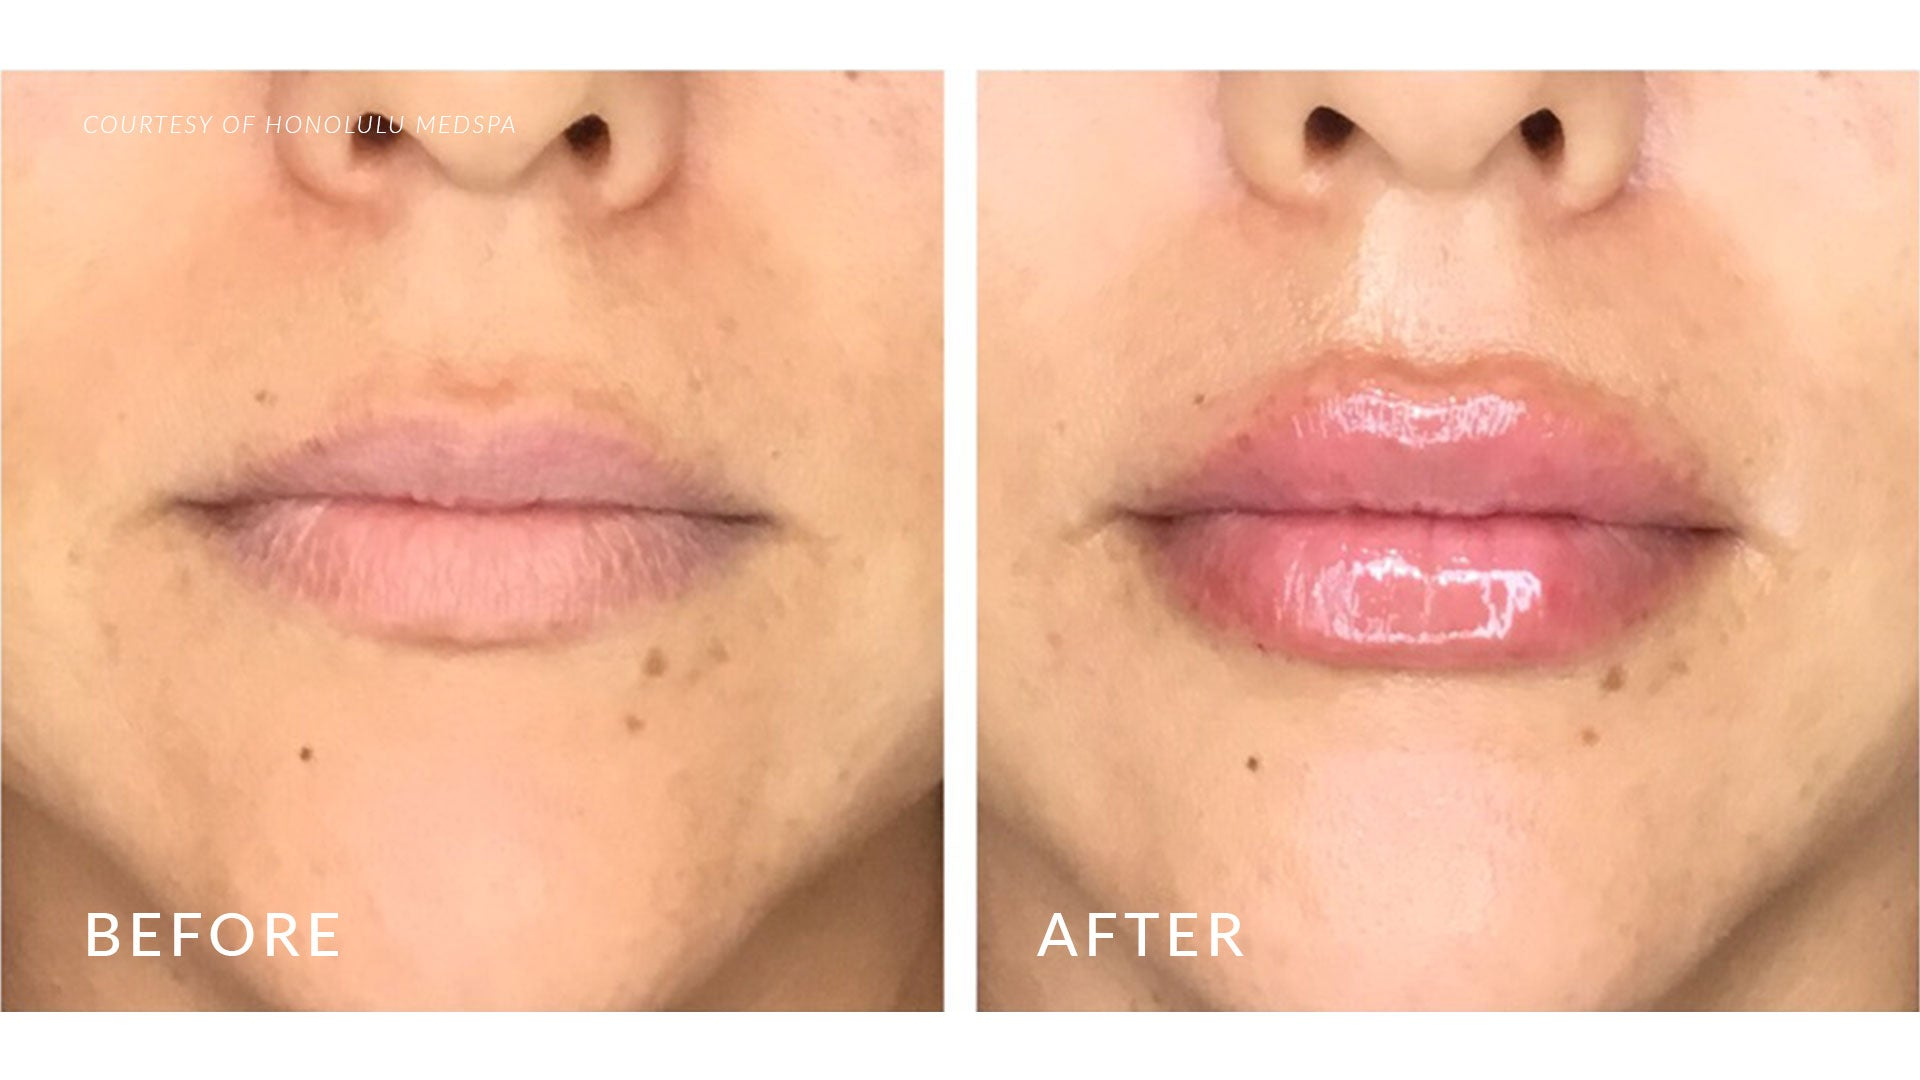 JUVÉDERM® HA FILLERS - Honolulu MedSpa